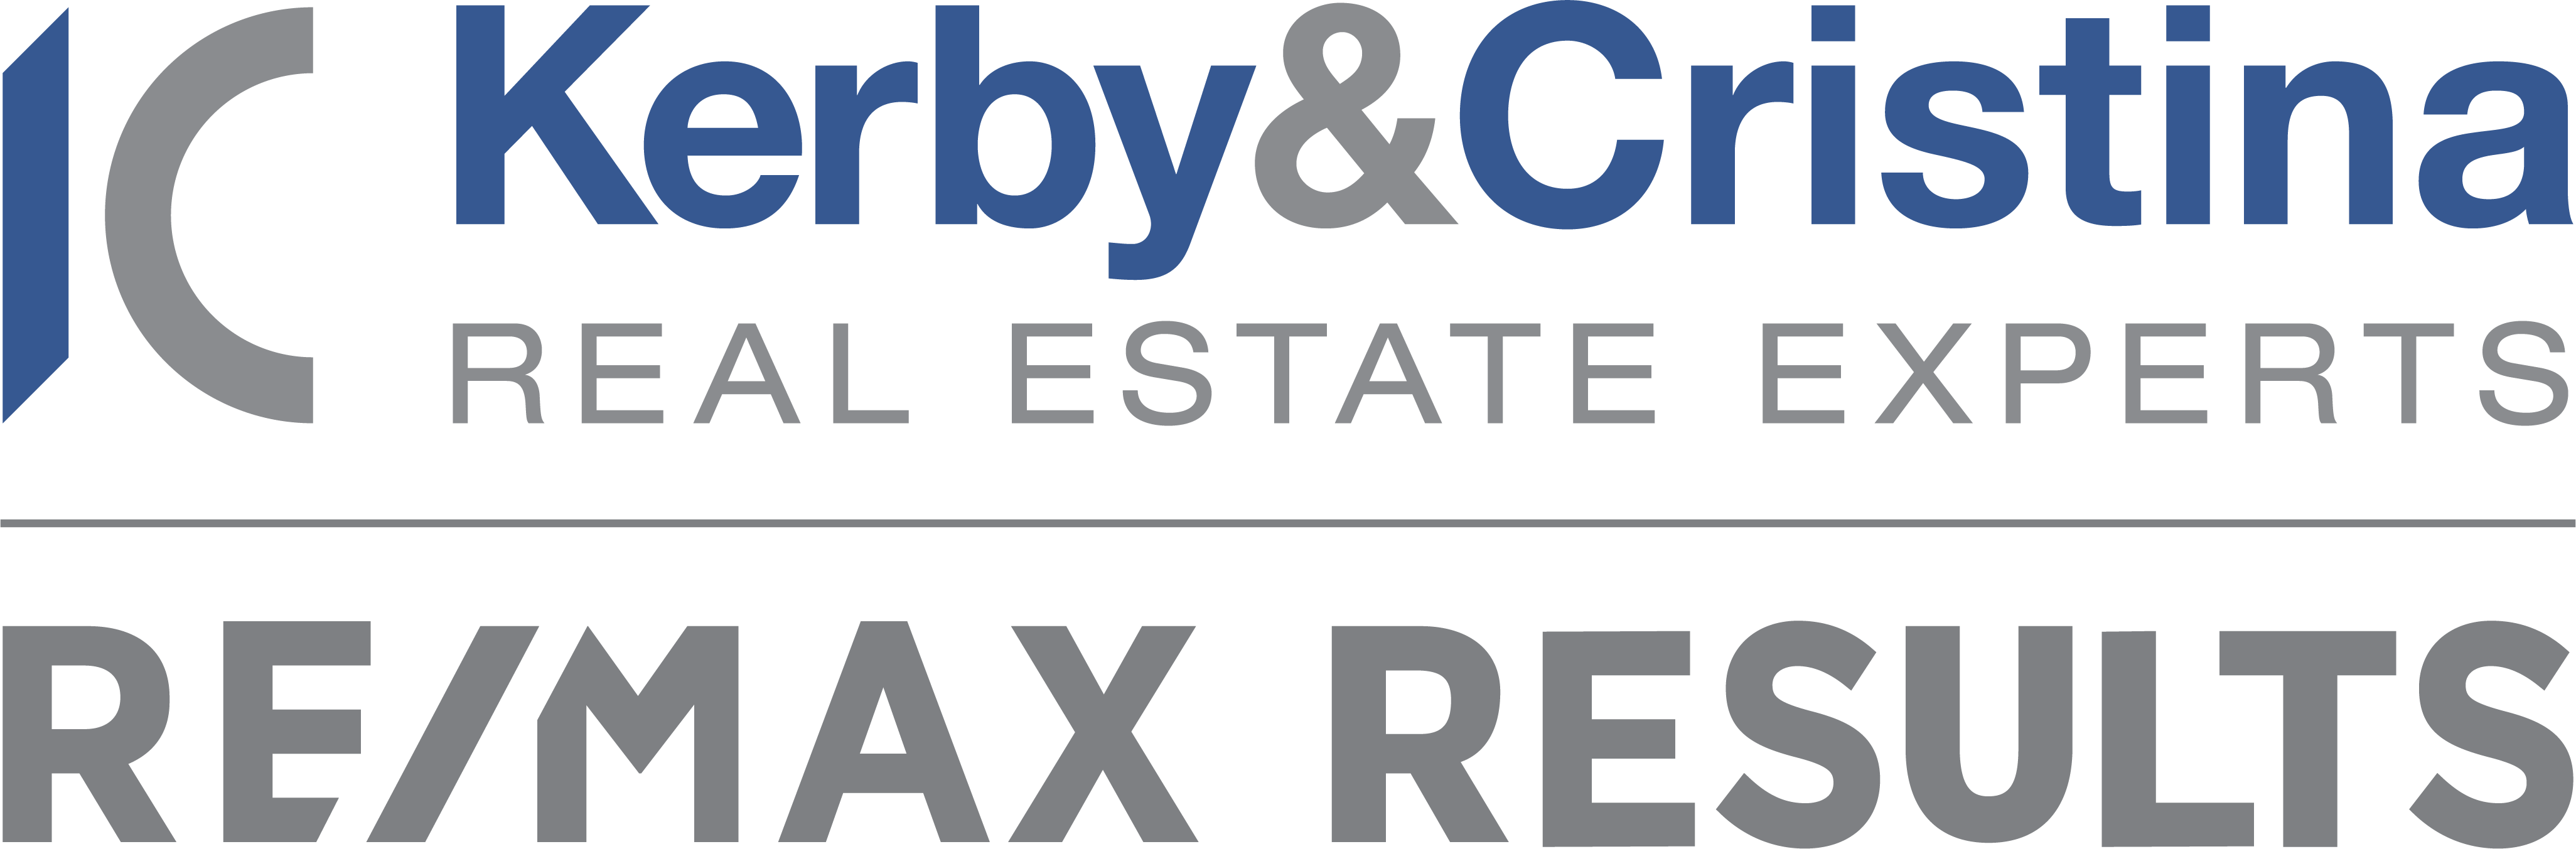 Kerby & Cristina Real Estate Experts logo